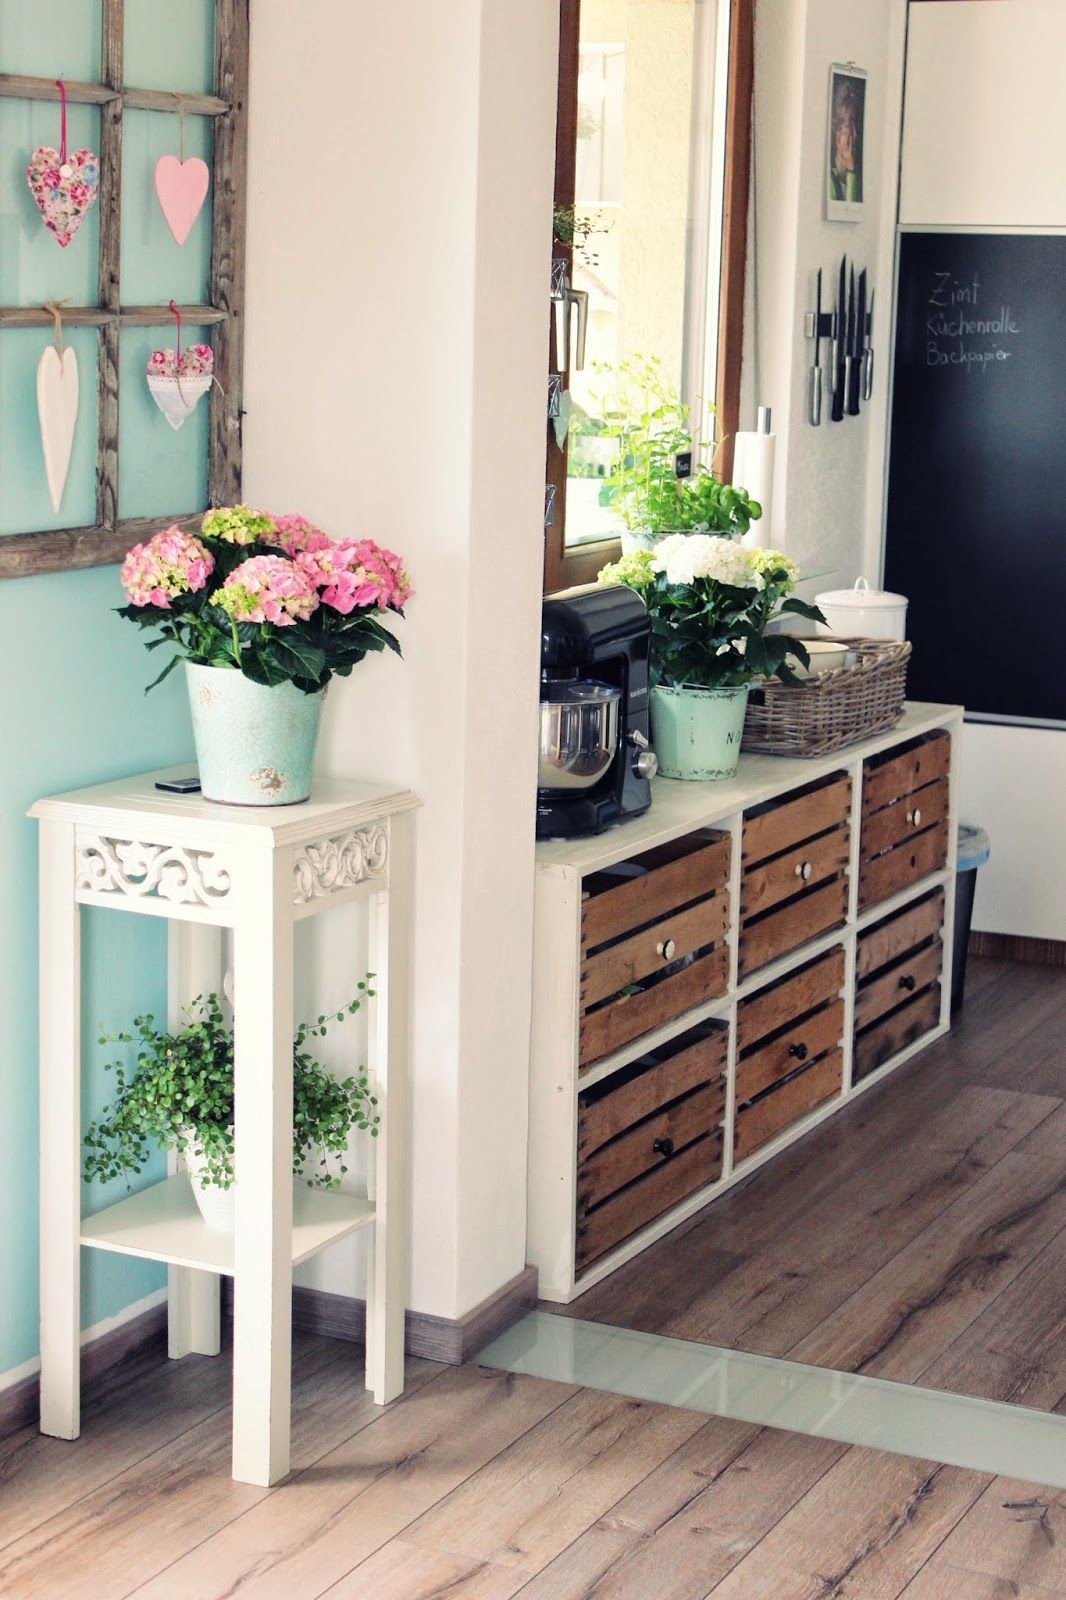 rangements simples | INTERIORs & HOMEs | Pinterest | Storage ideas ...